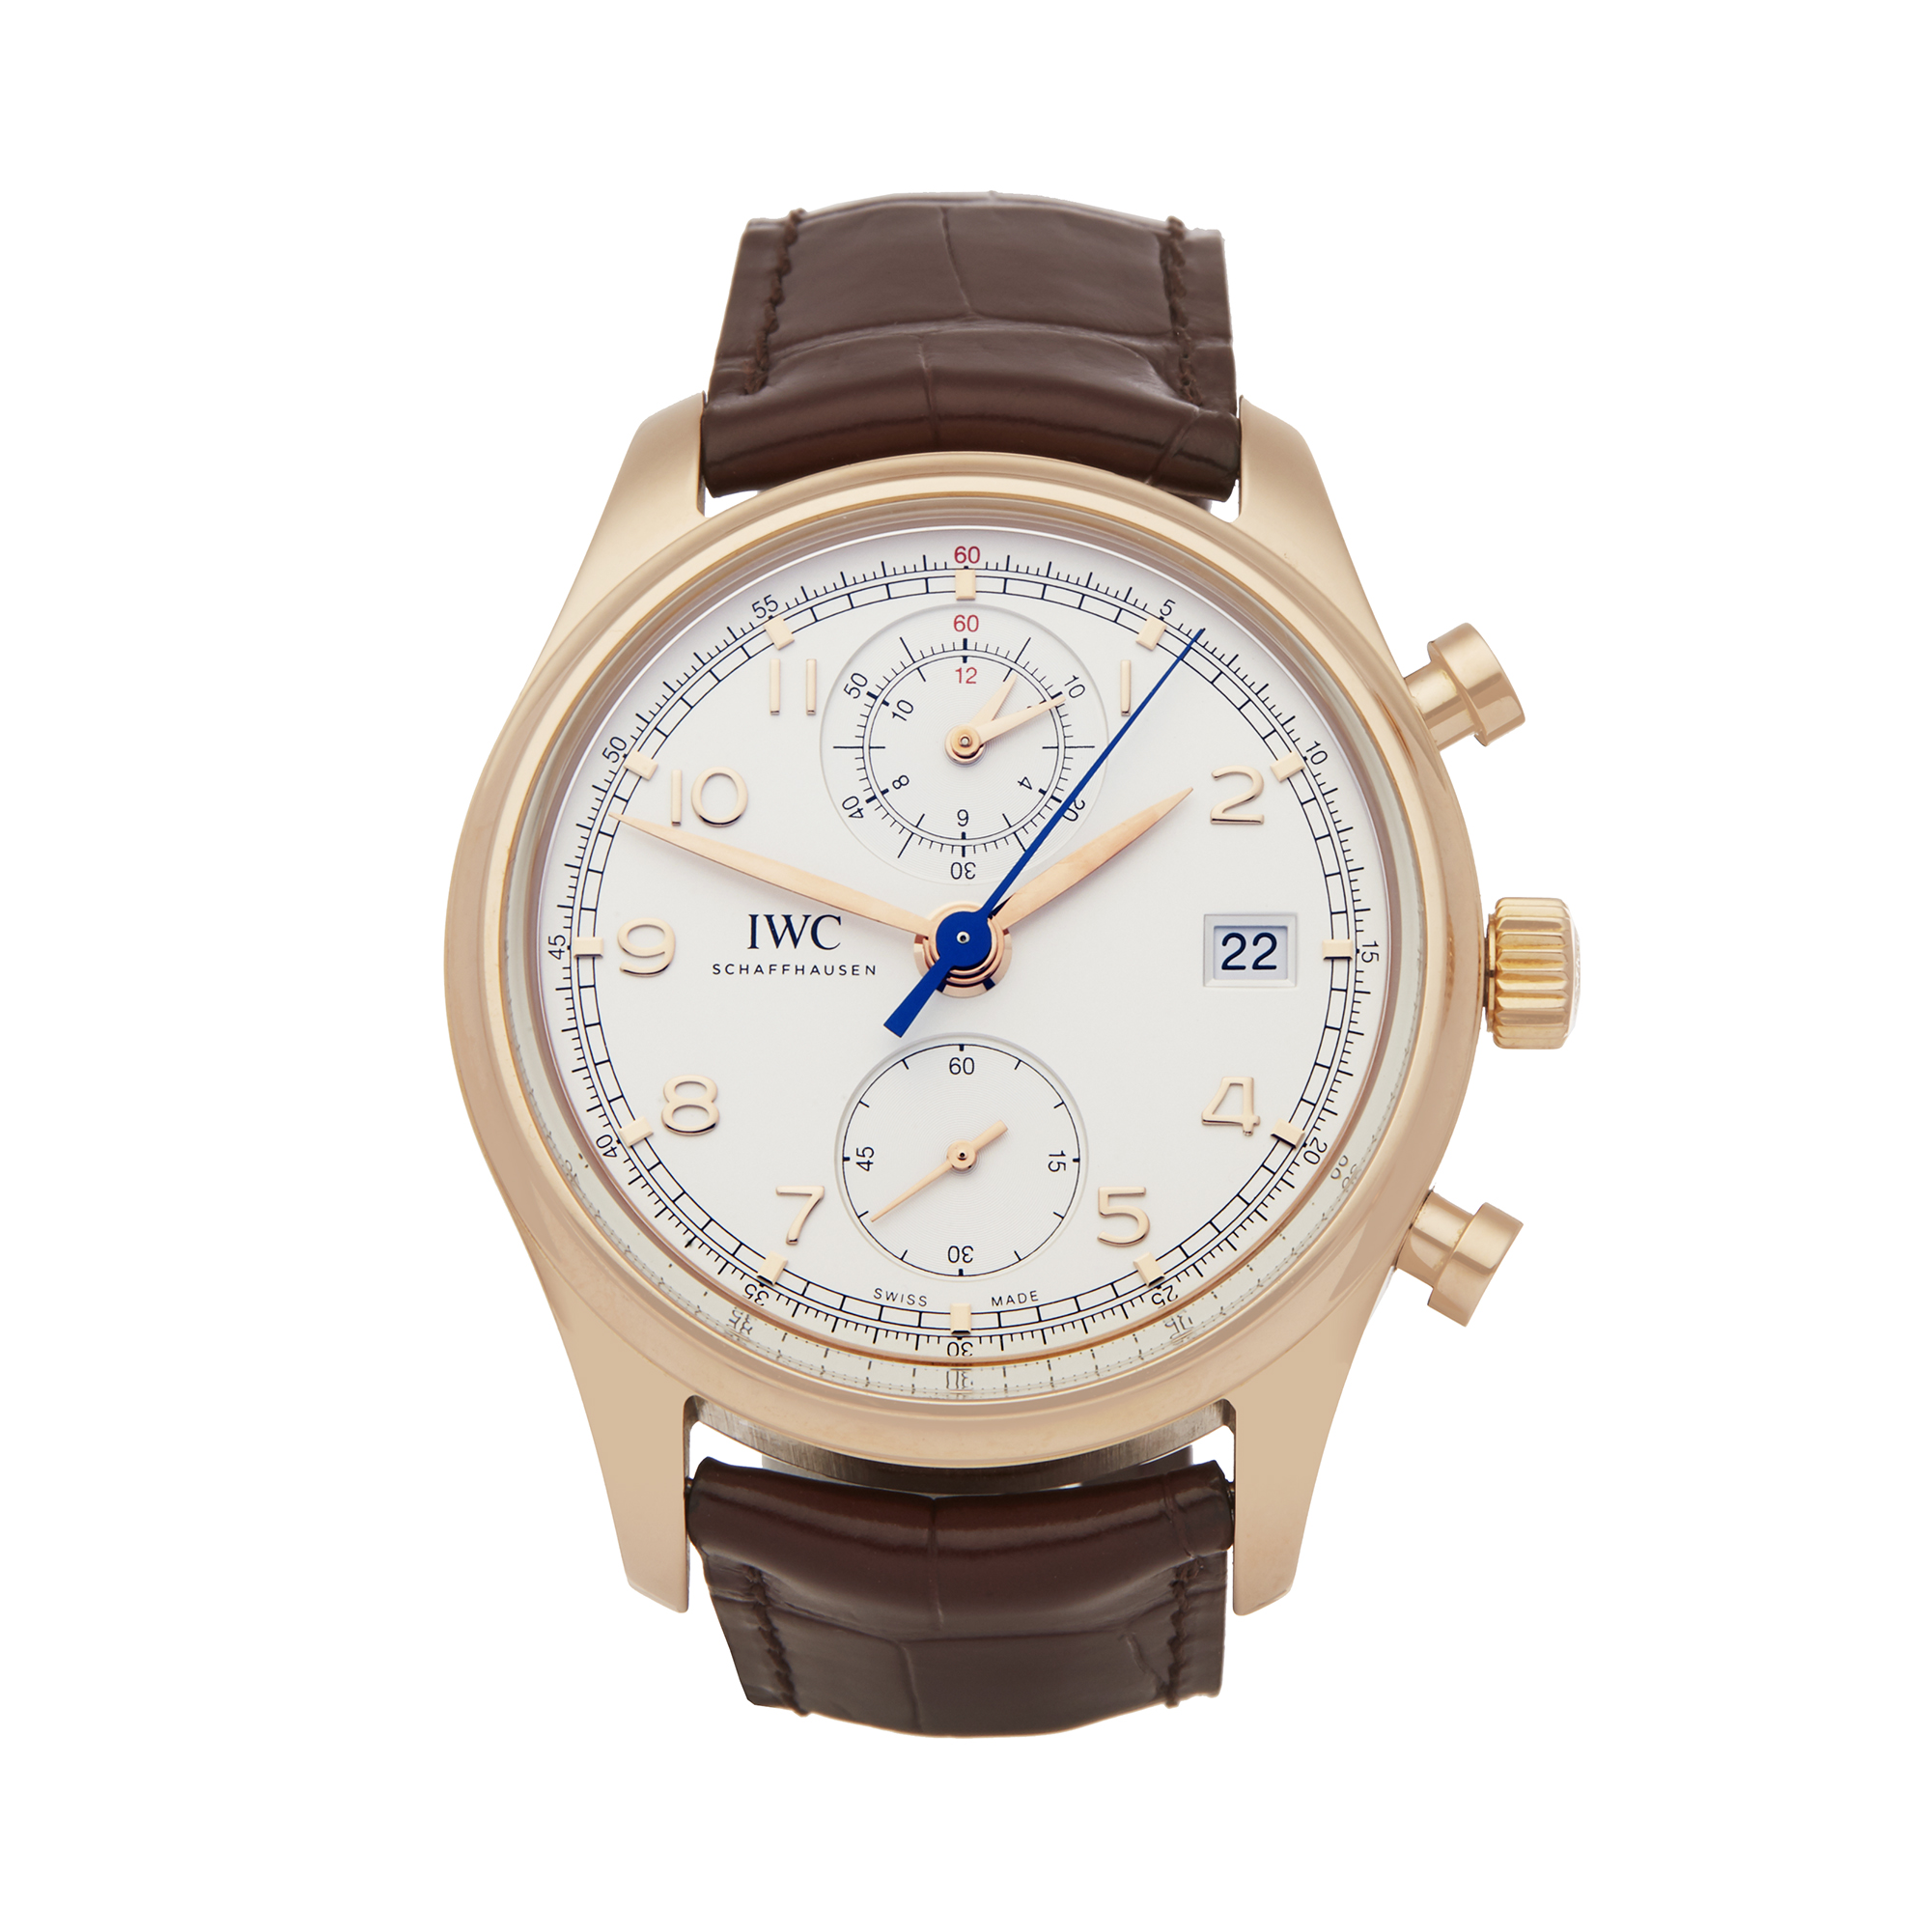 IWC Portuguese Classic IW390402 Men Rose Gold Chronograph Watch - Image 6 of 6